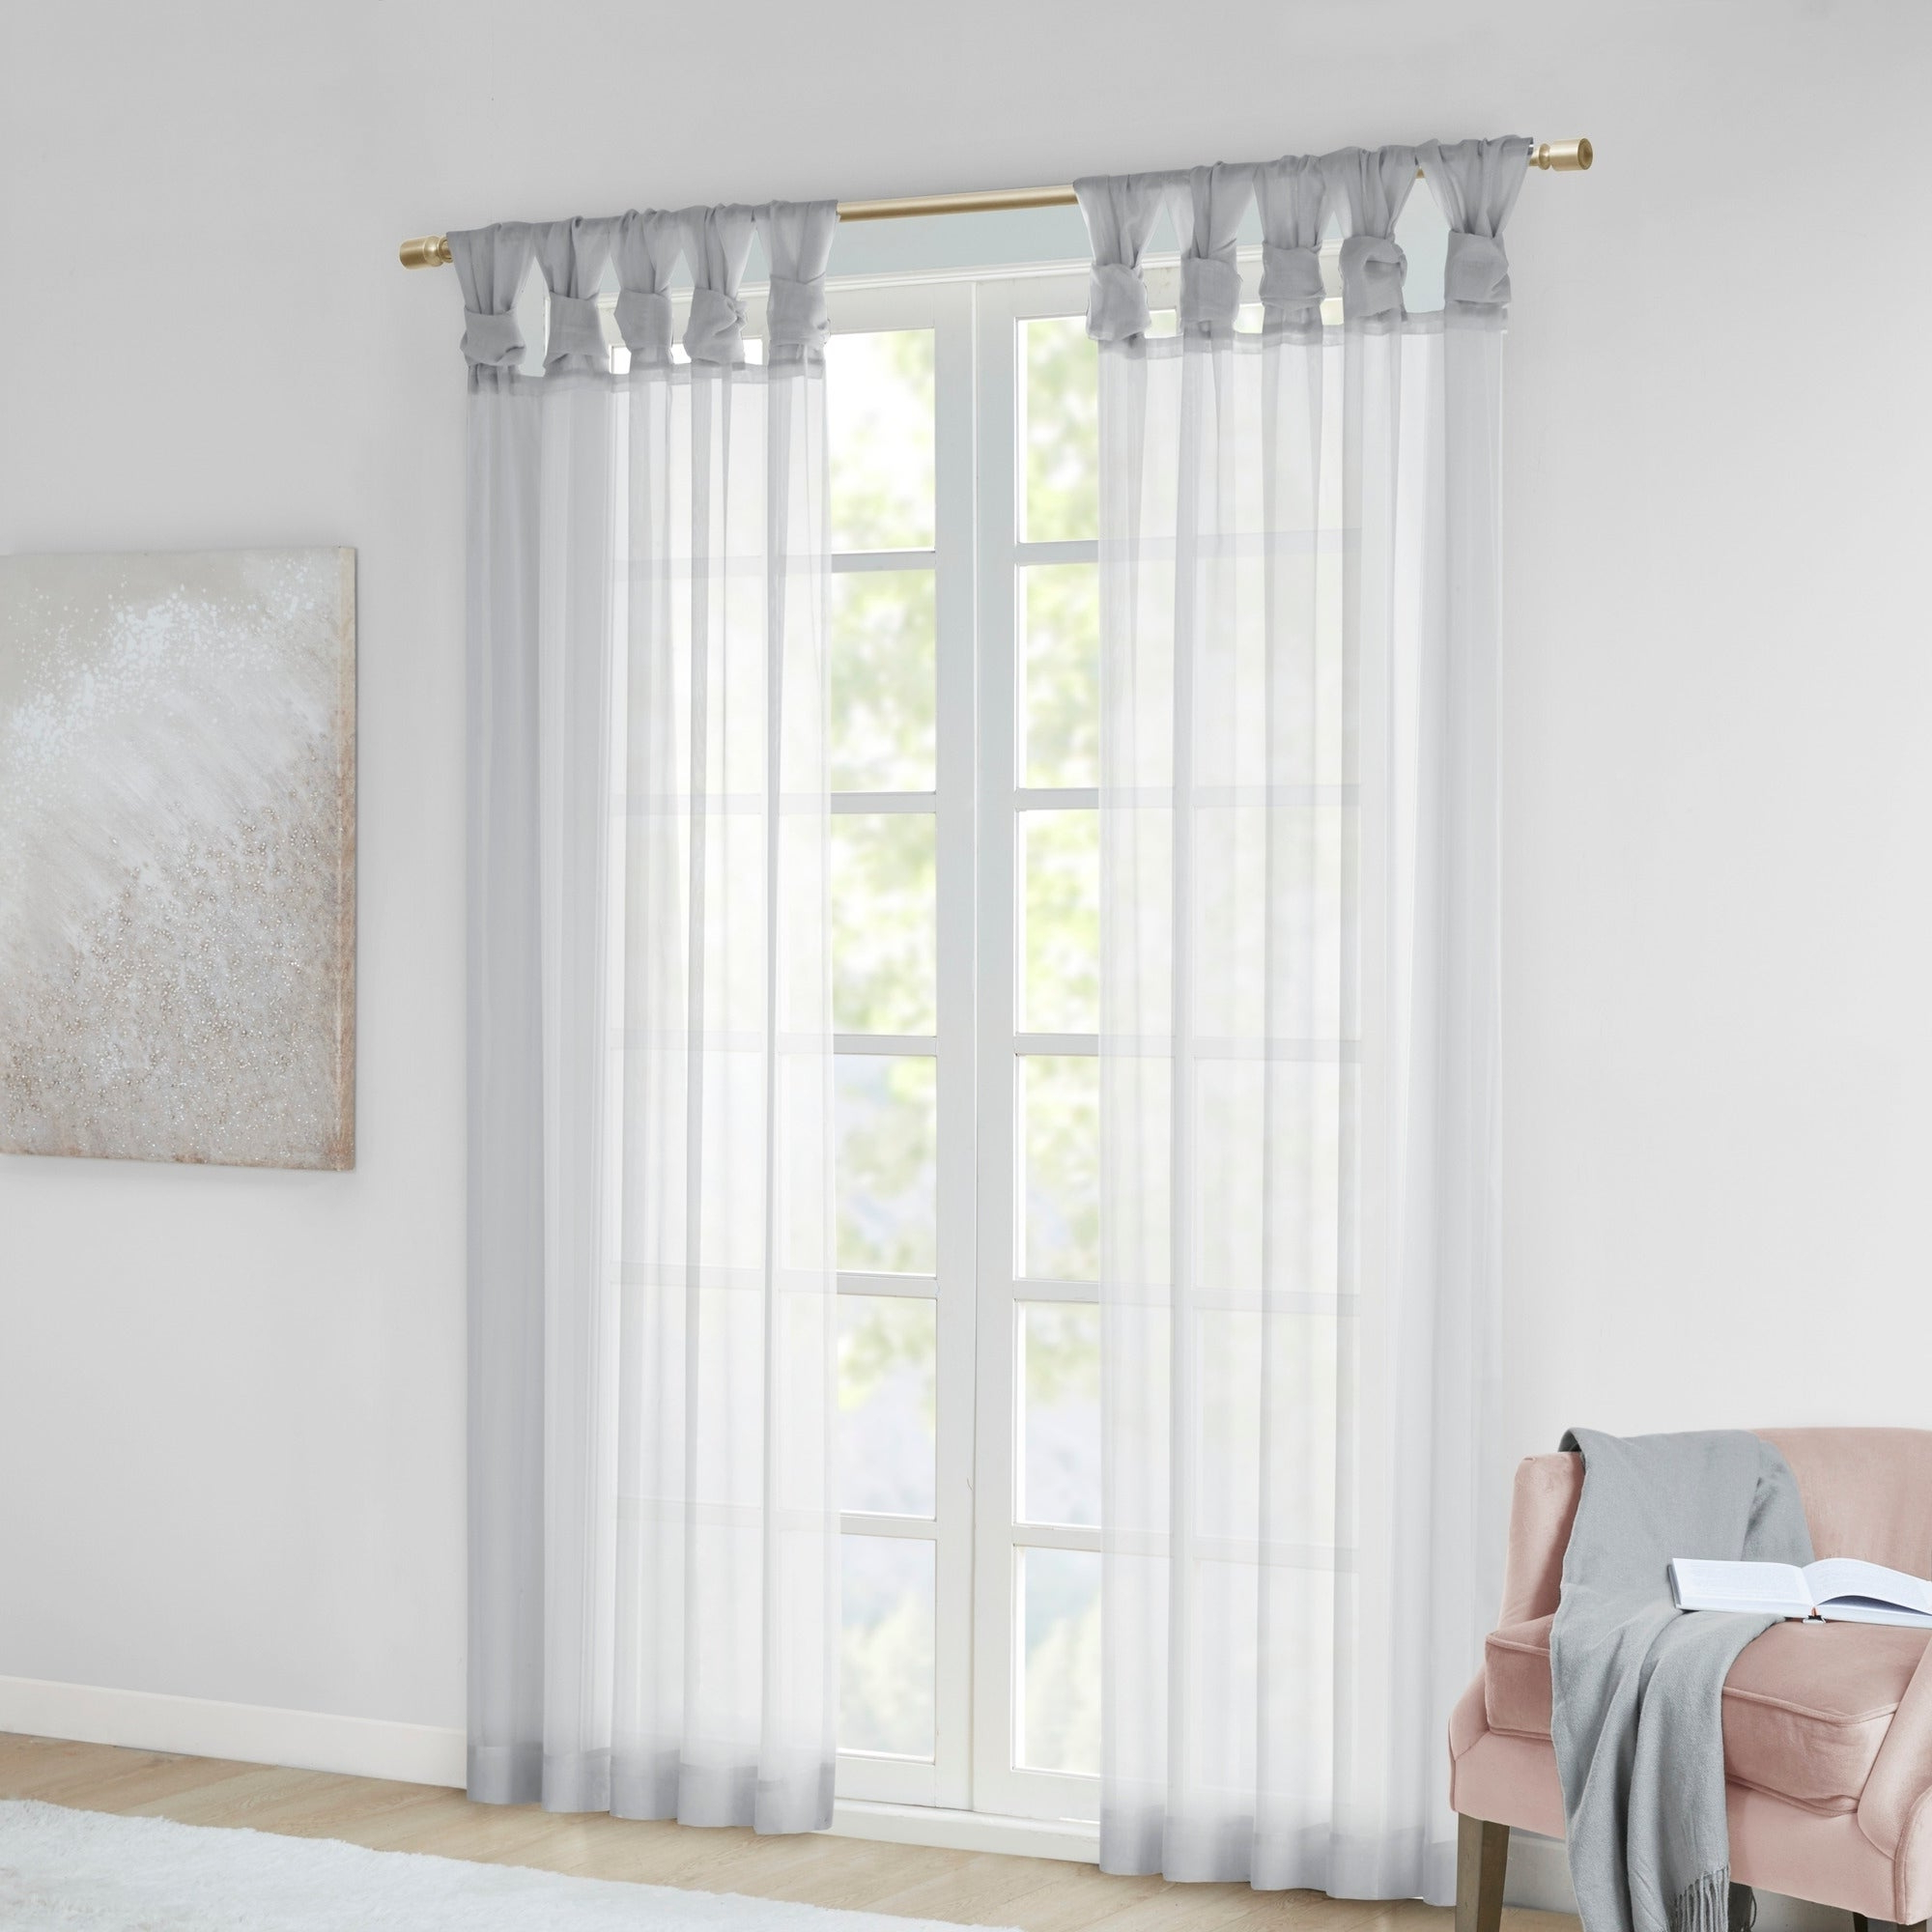 Elowen White Twist Tab Voile Sheer Curtain Panel Pairs Throughout Well Liked Madison Park Elowen White Twist Tab Voile Sheer Curtain Panel Pair (View 12 of 20)